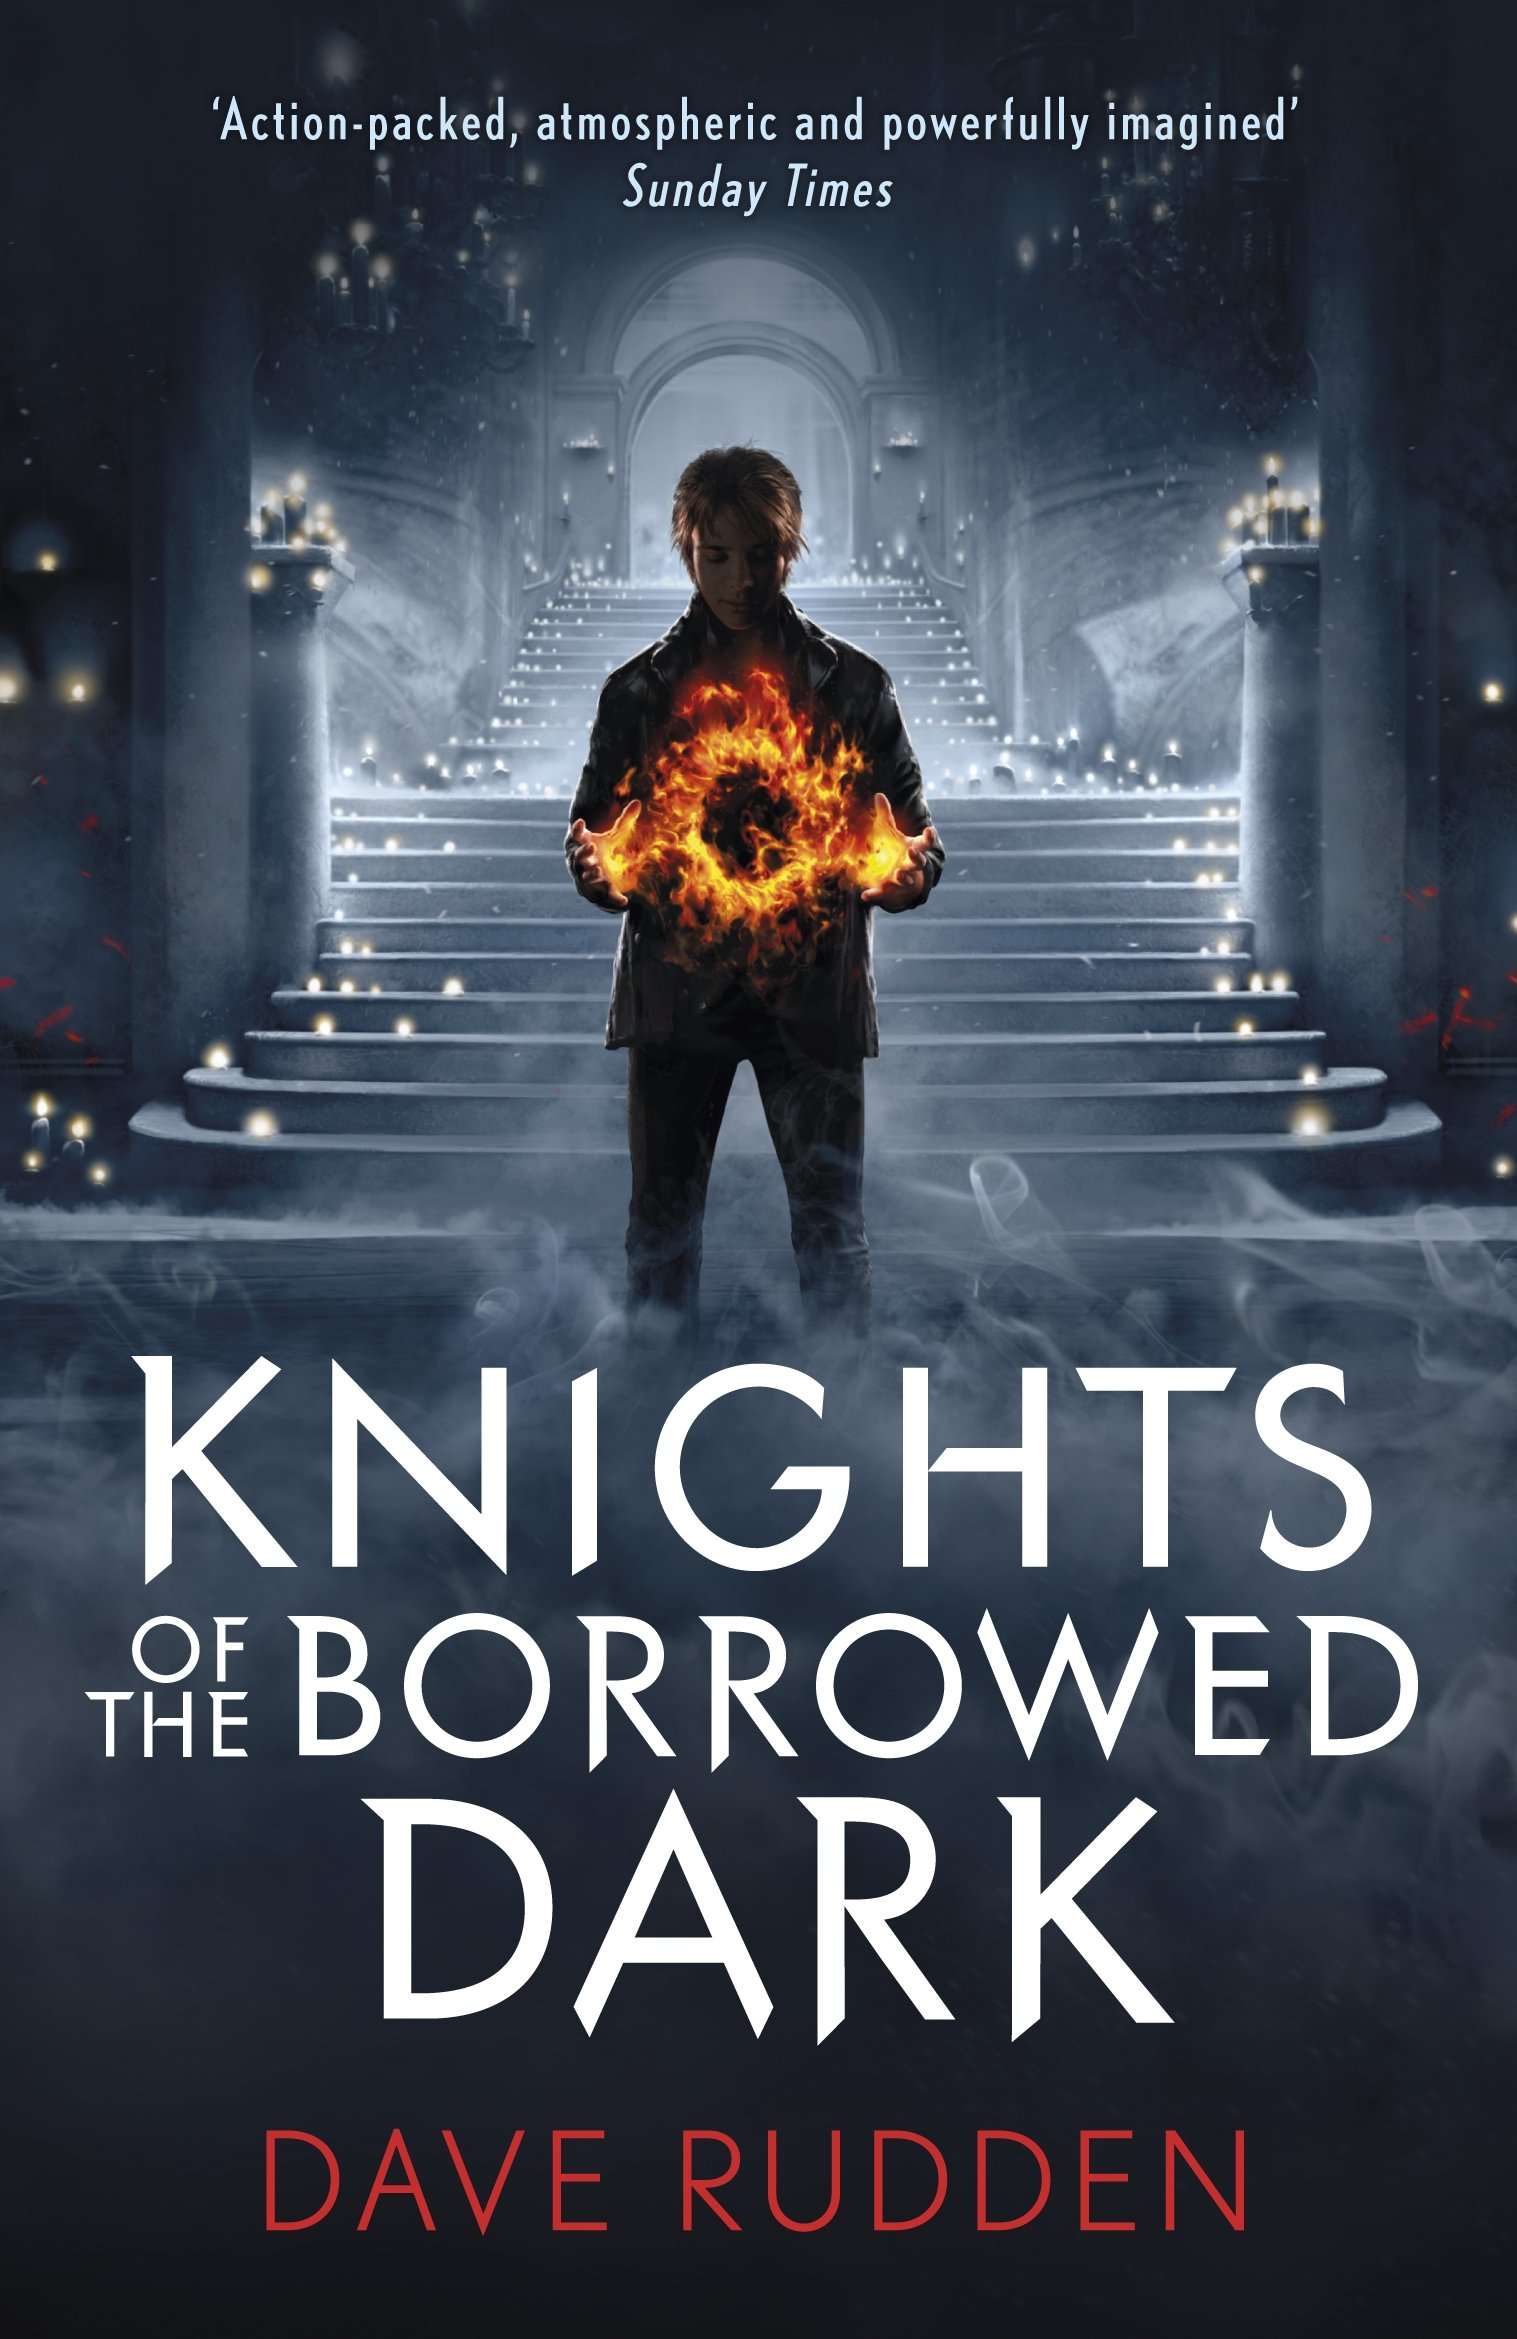 Knights of the Borrowed Dark (Knights of the Borrowed Dark Book 1) pdf